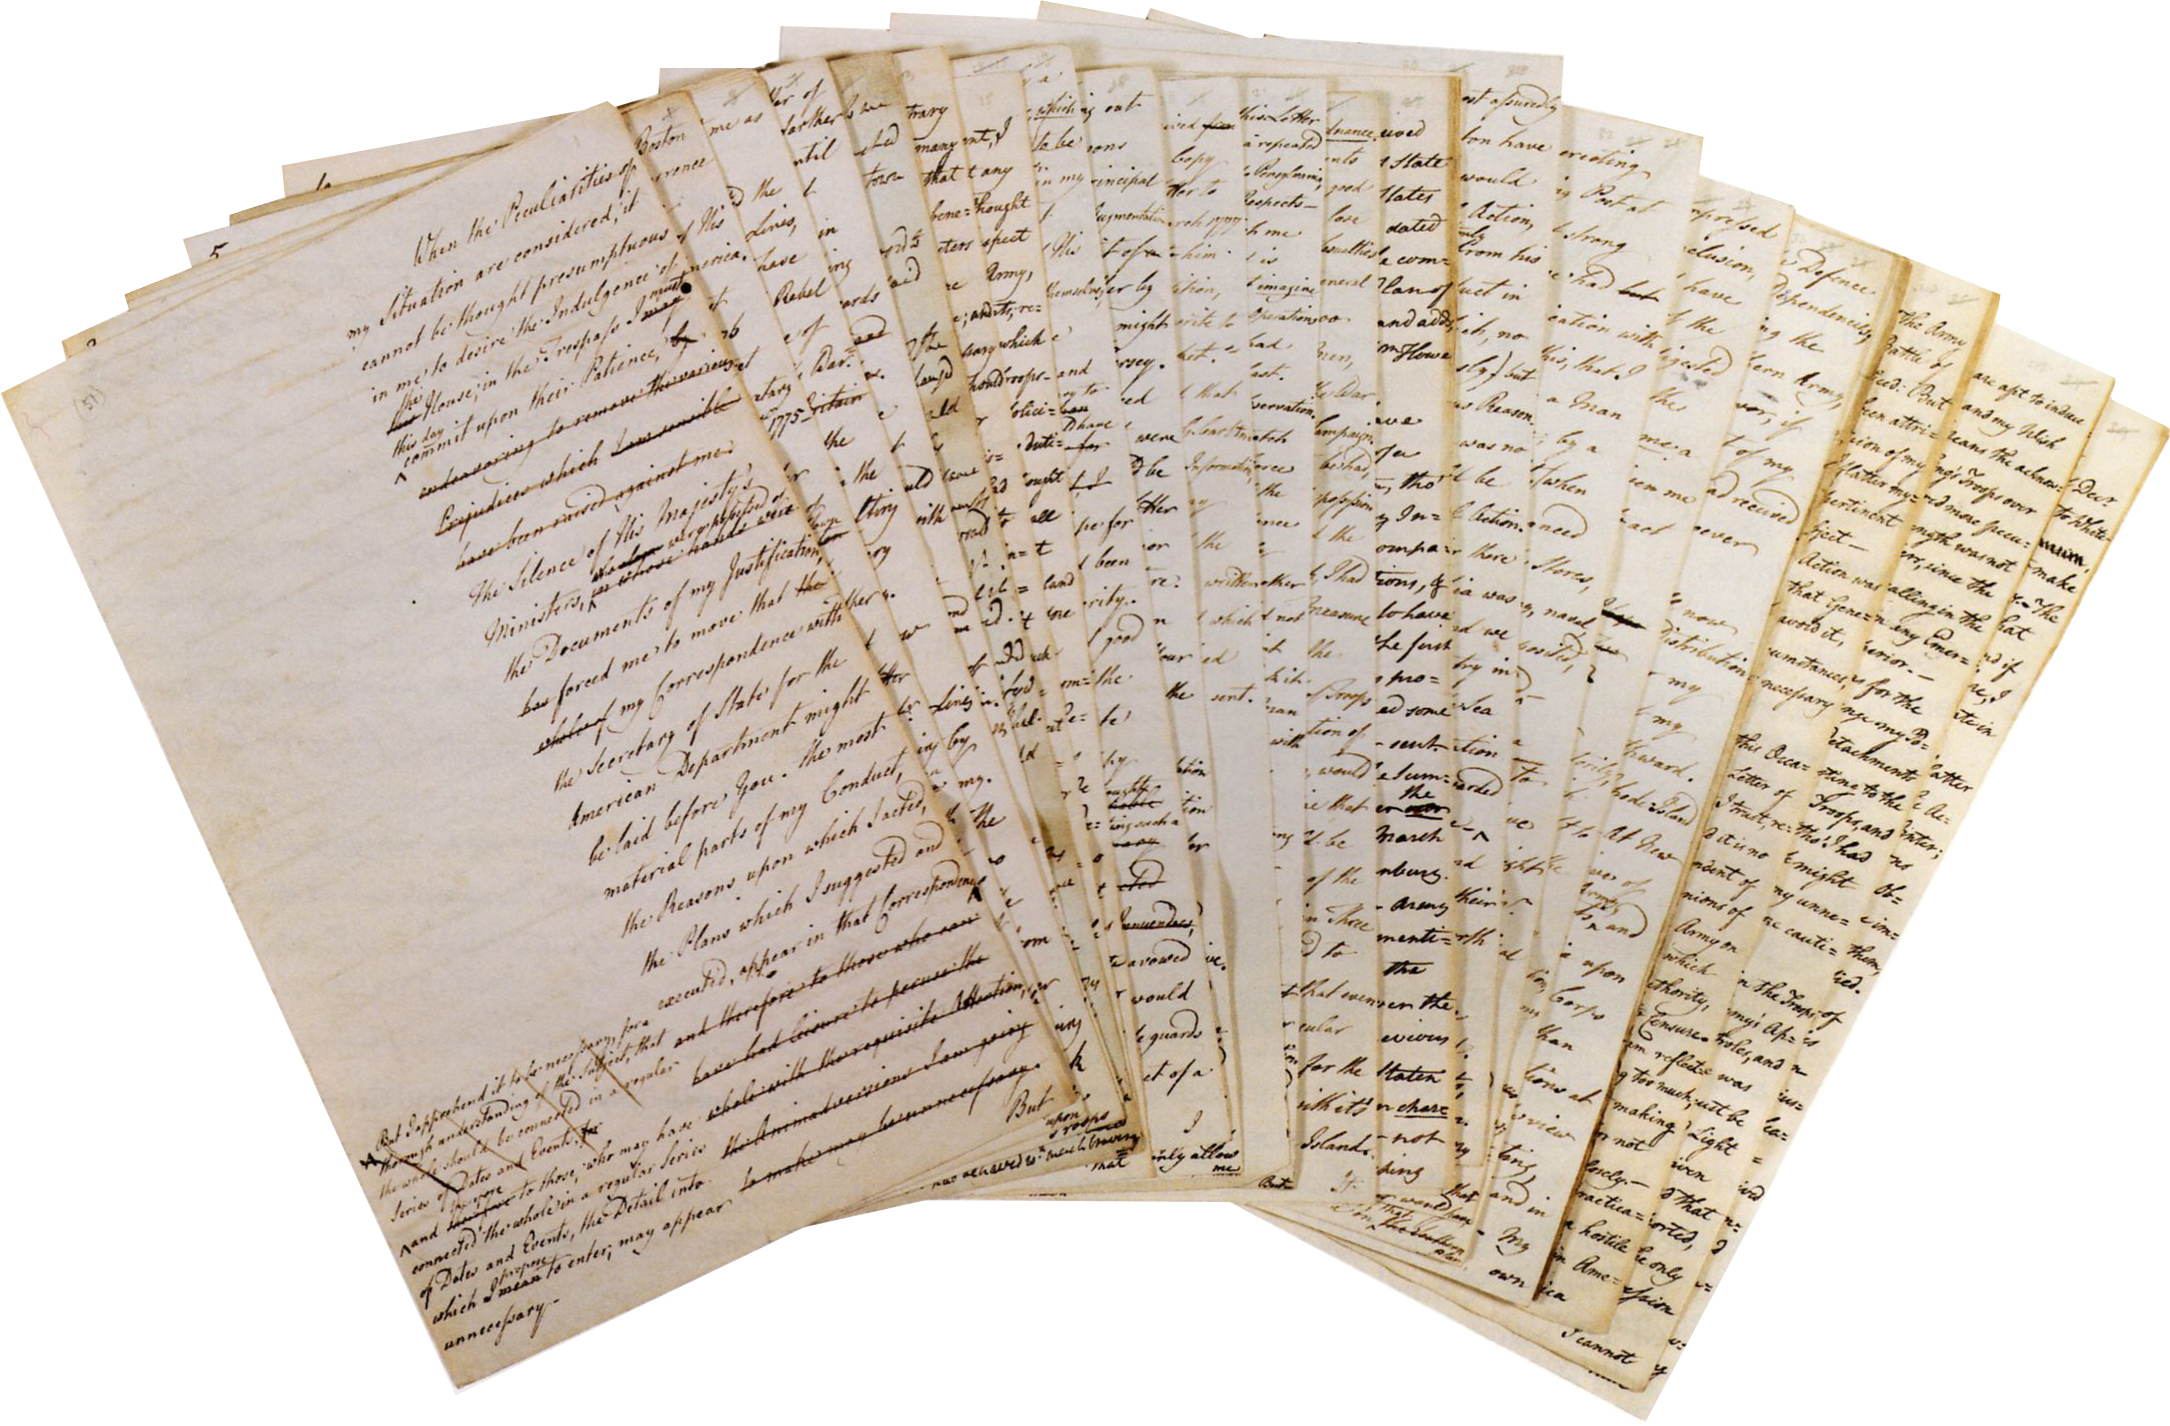 General Howe's narrative papers